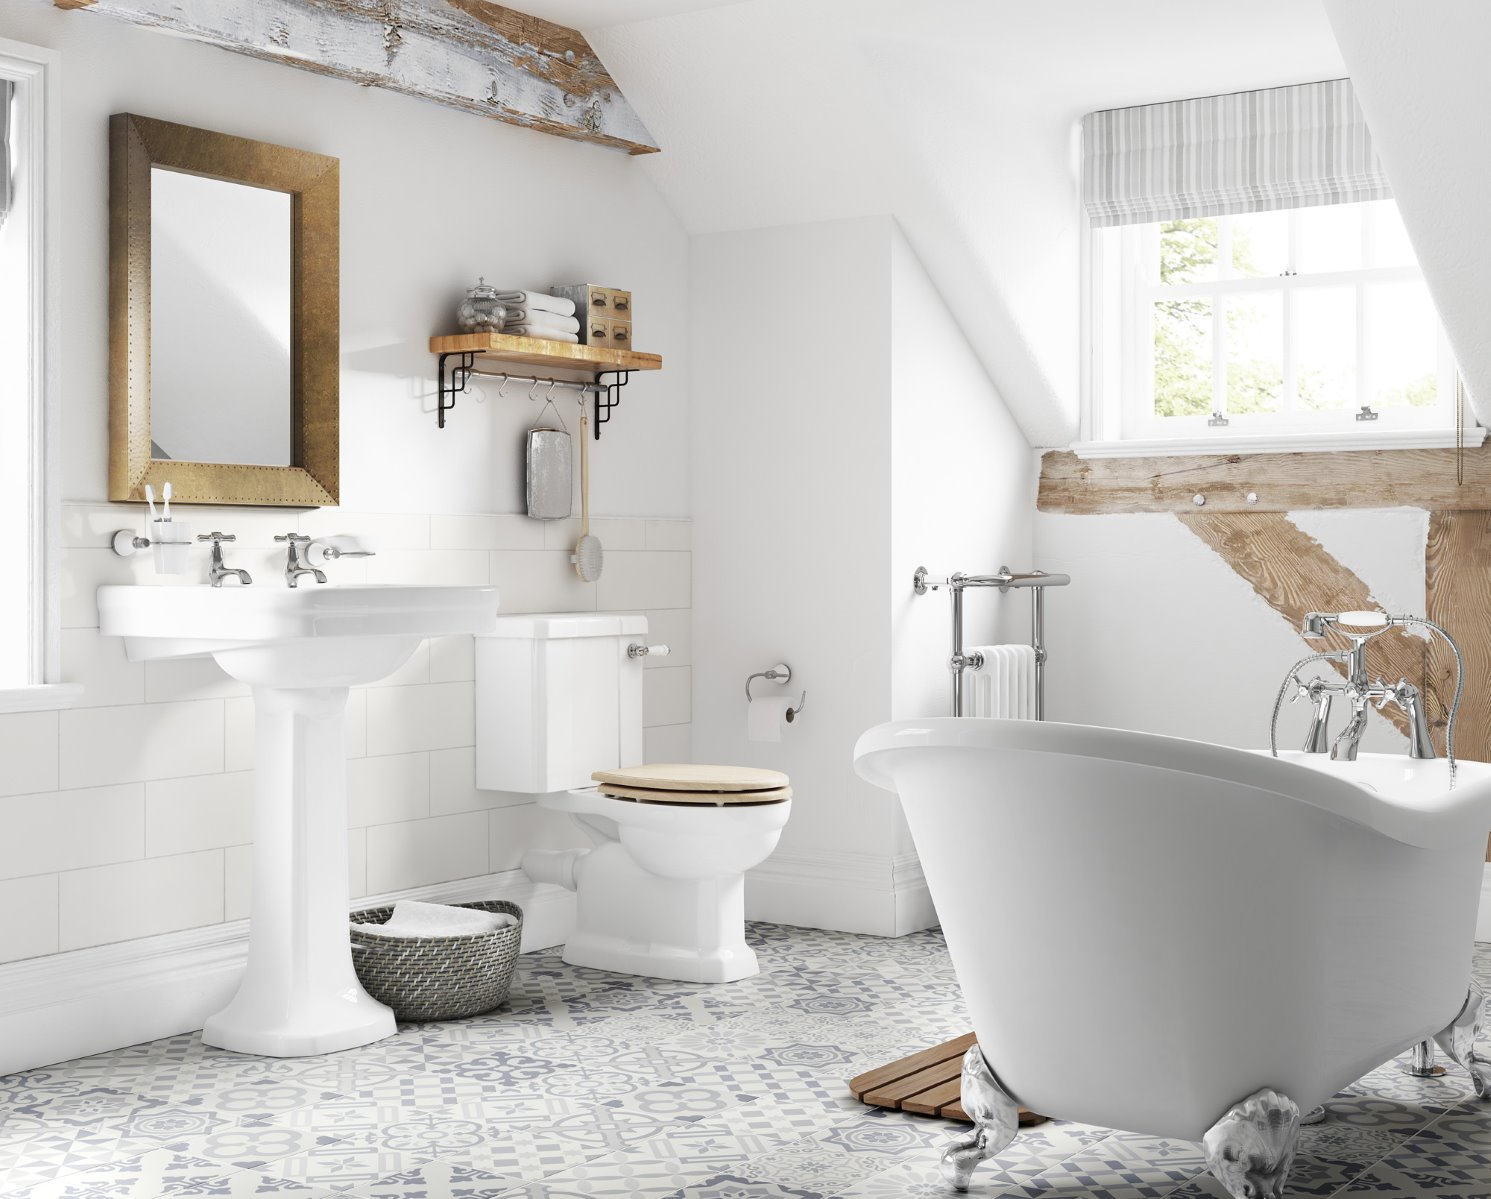 exposed beans CGI bathroom lifestyle traditional